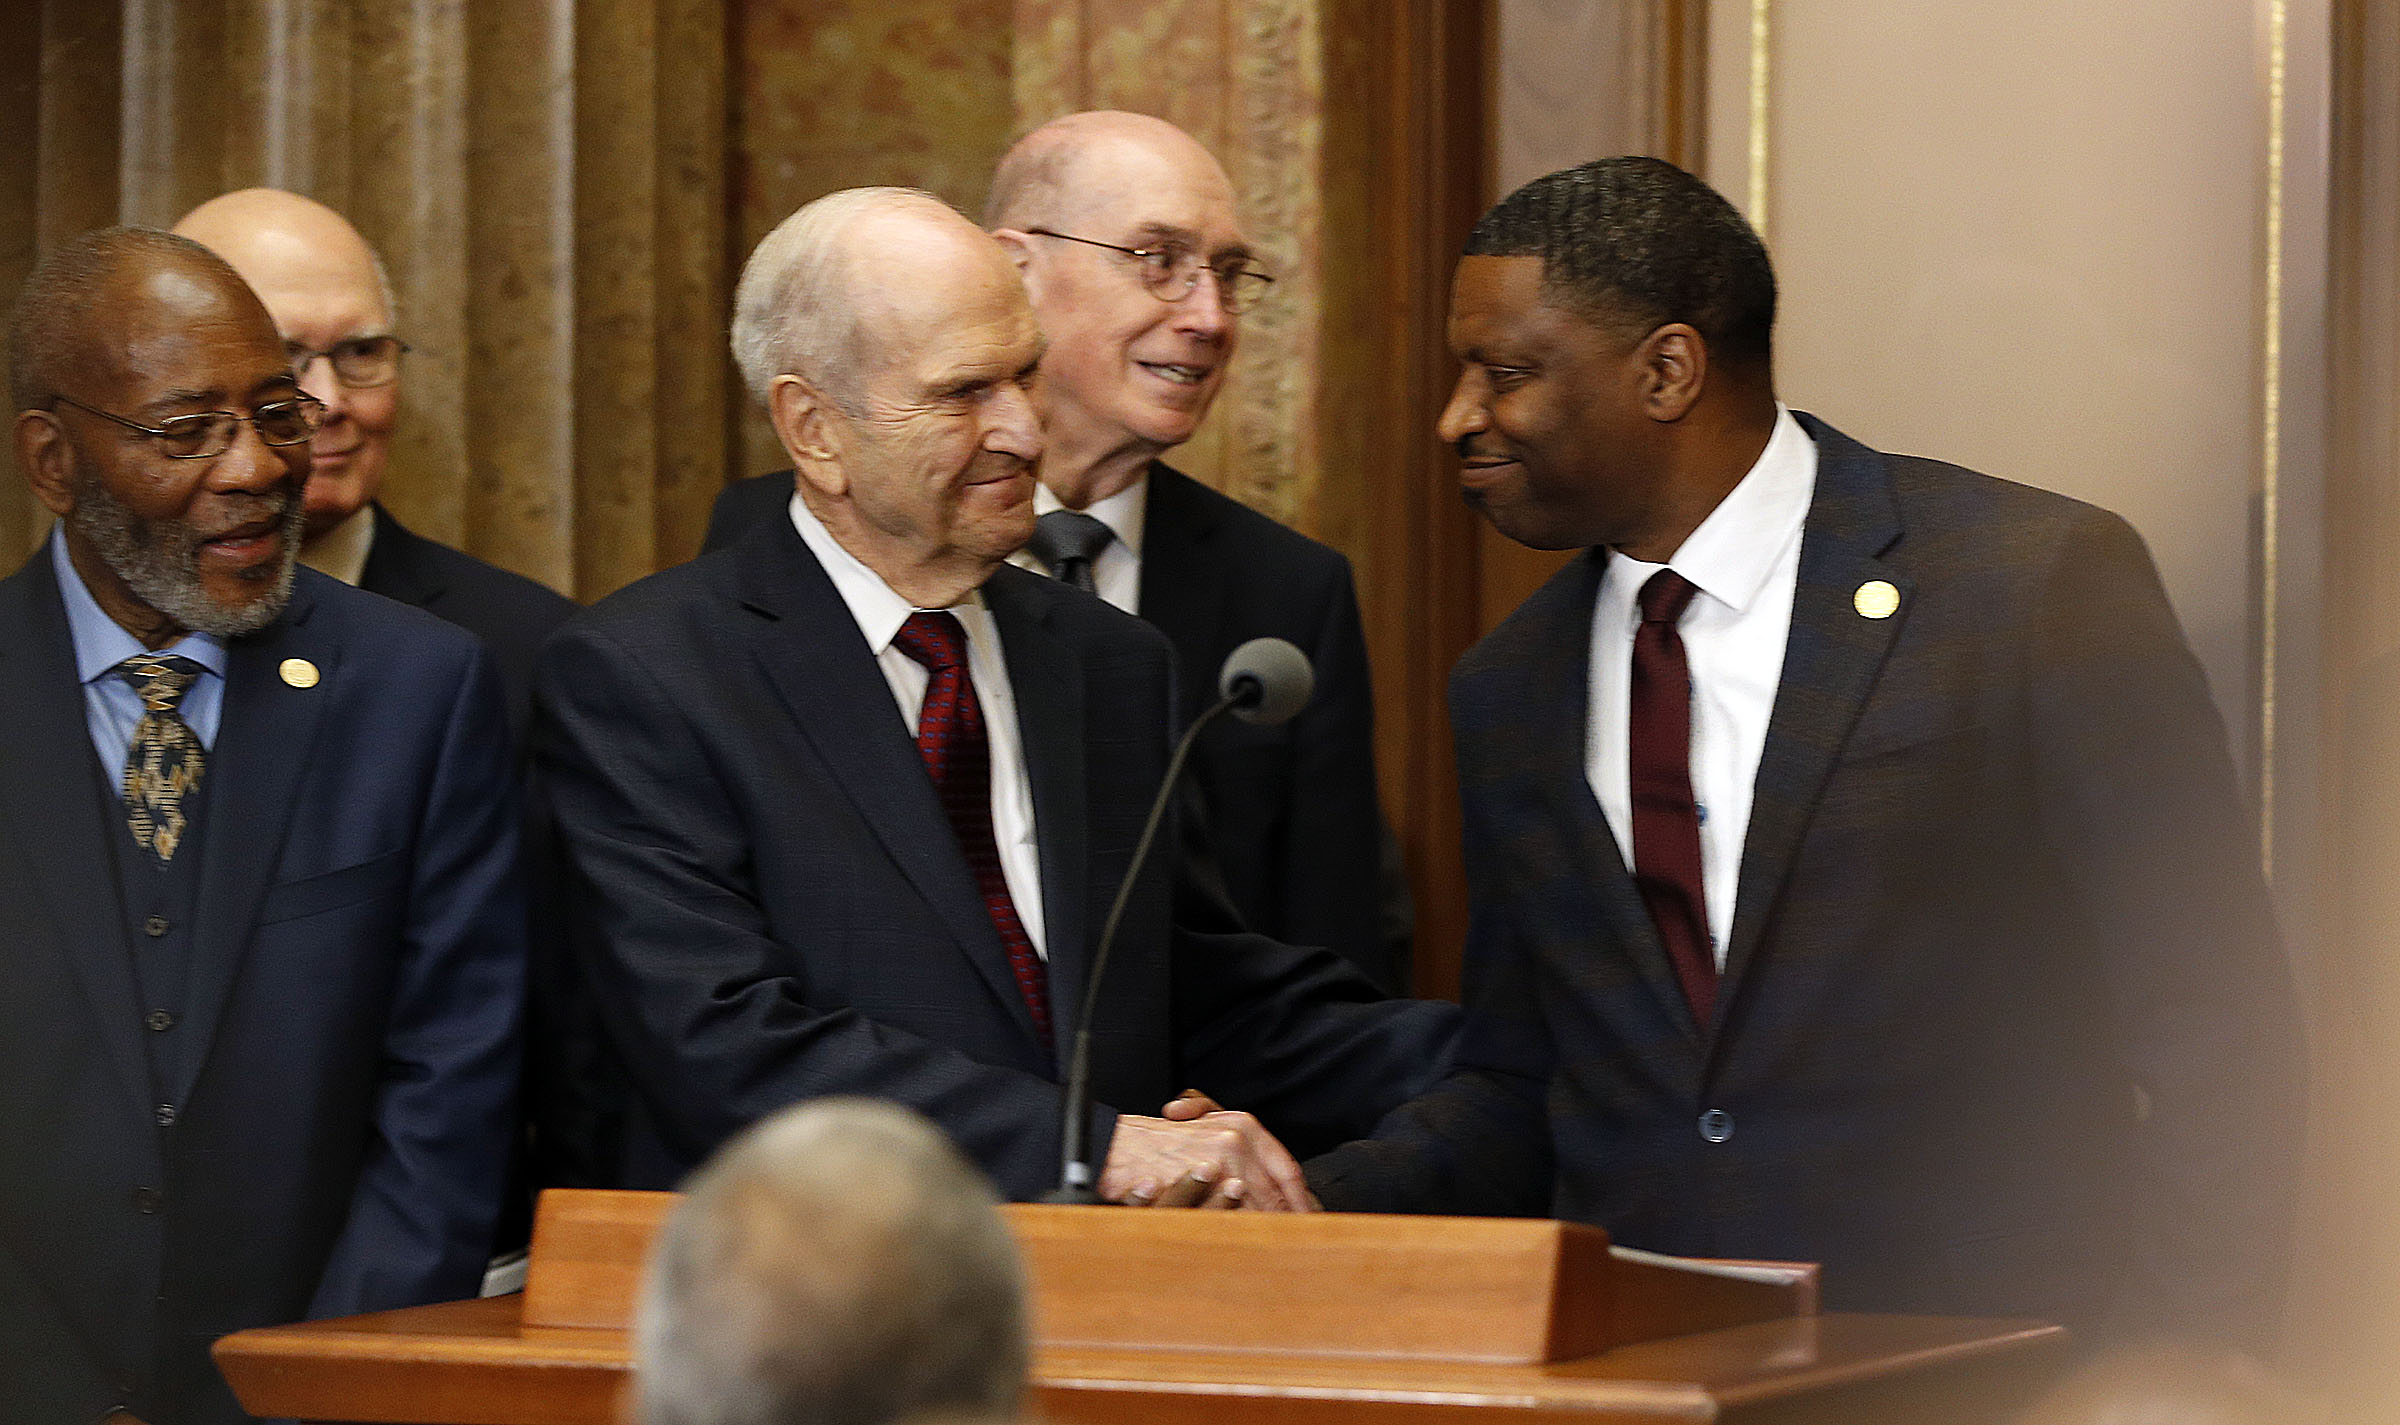 President Russell M. Nelson of The Church of Jesus Christ of Latter-day Saints shakes hands with National President Derrick Johnson of the NAACP, right, during a press conference in Salt Lake City on Thursday, May 17, 2018.